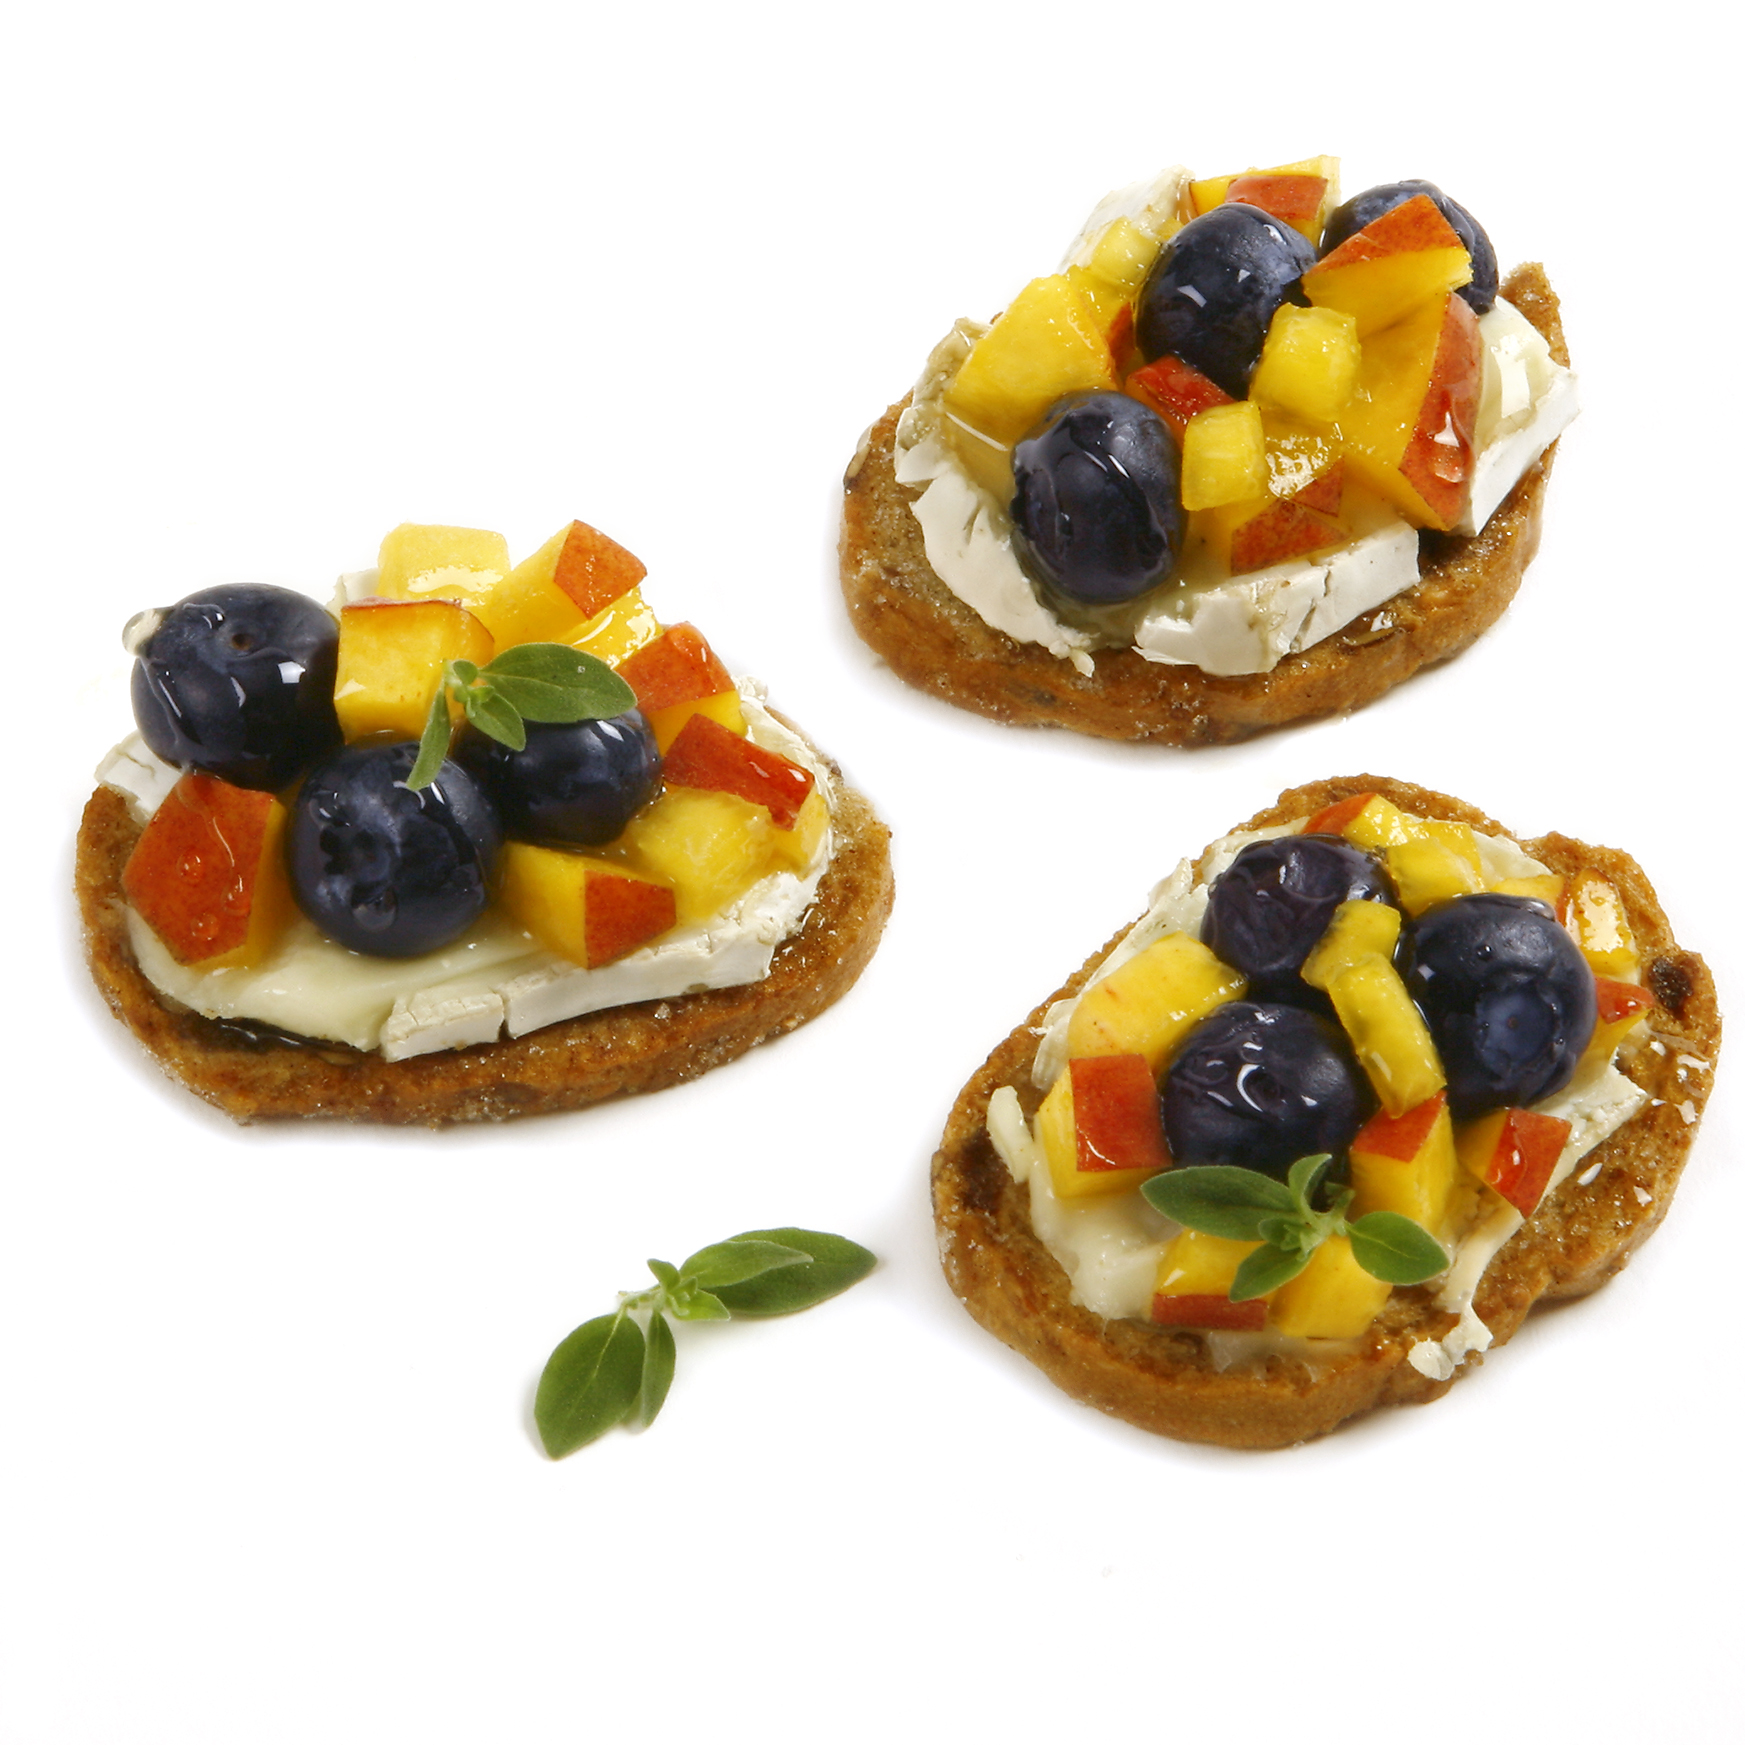 blueberryfruitycrostini_group.jpg